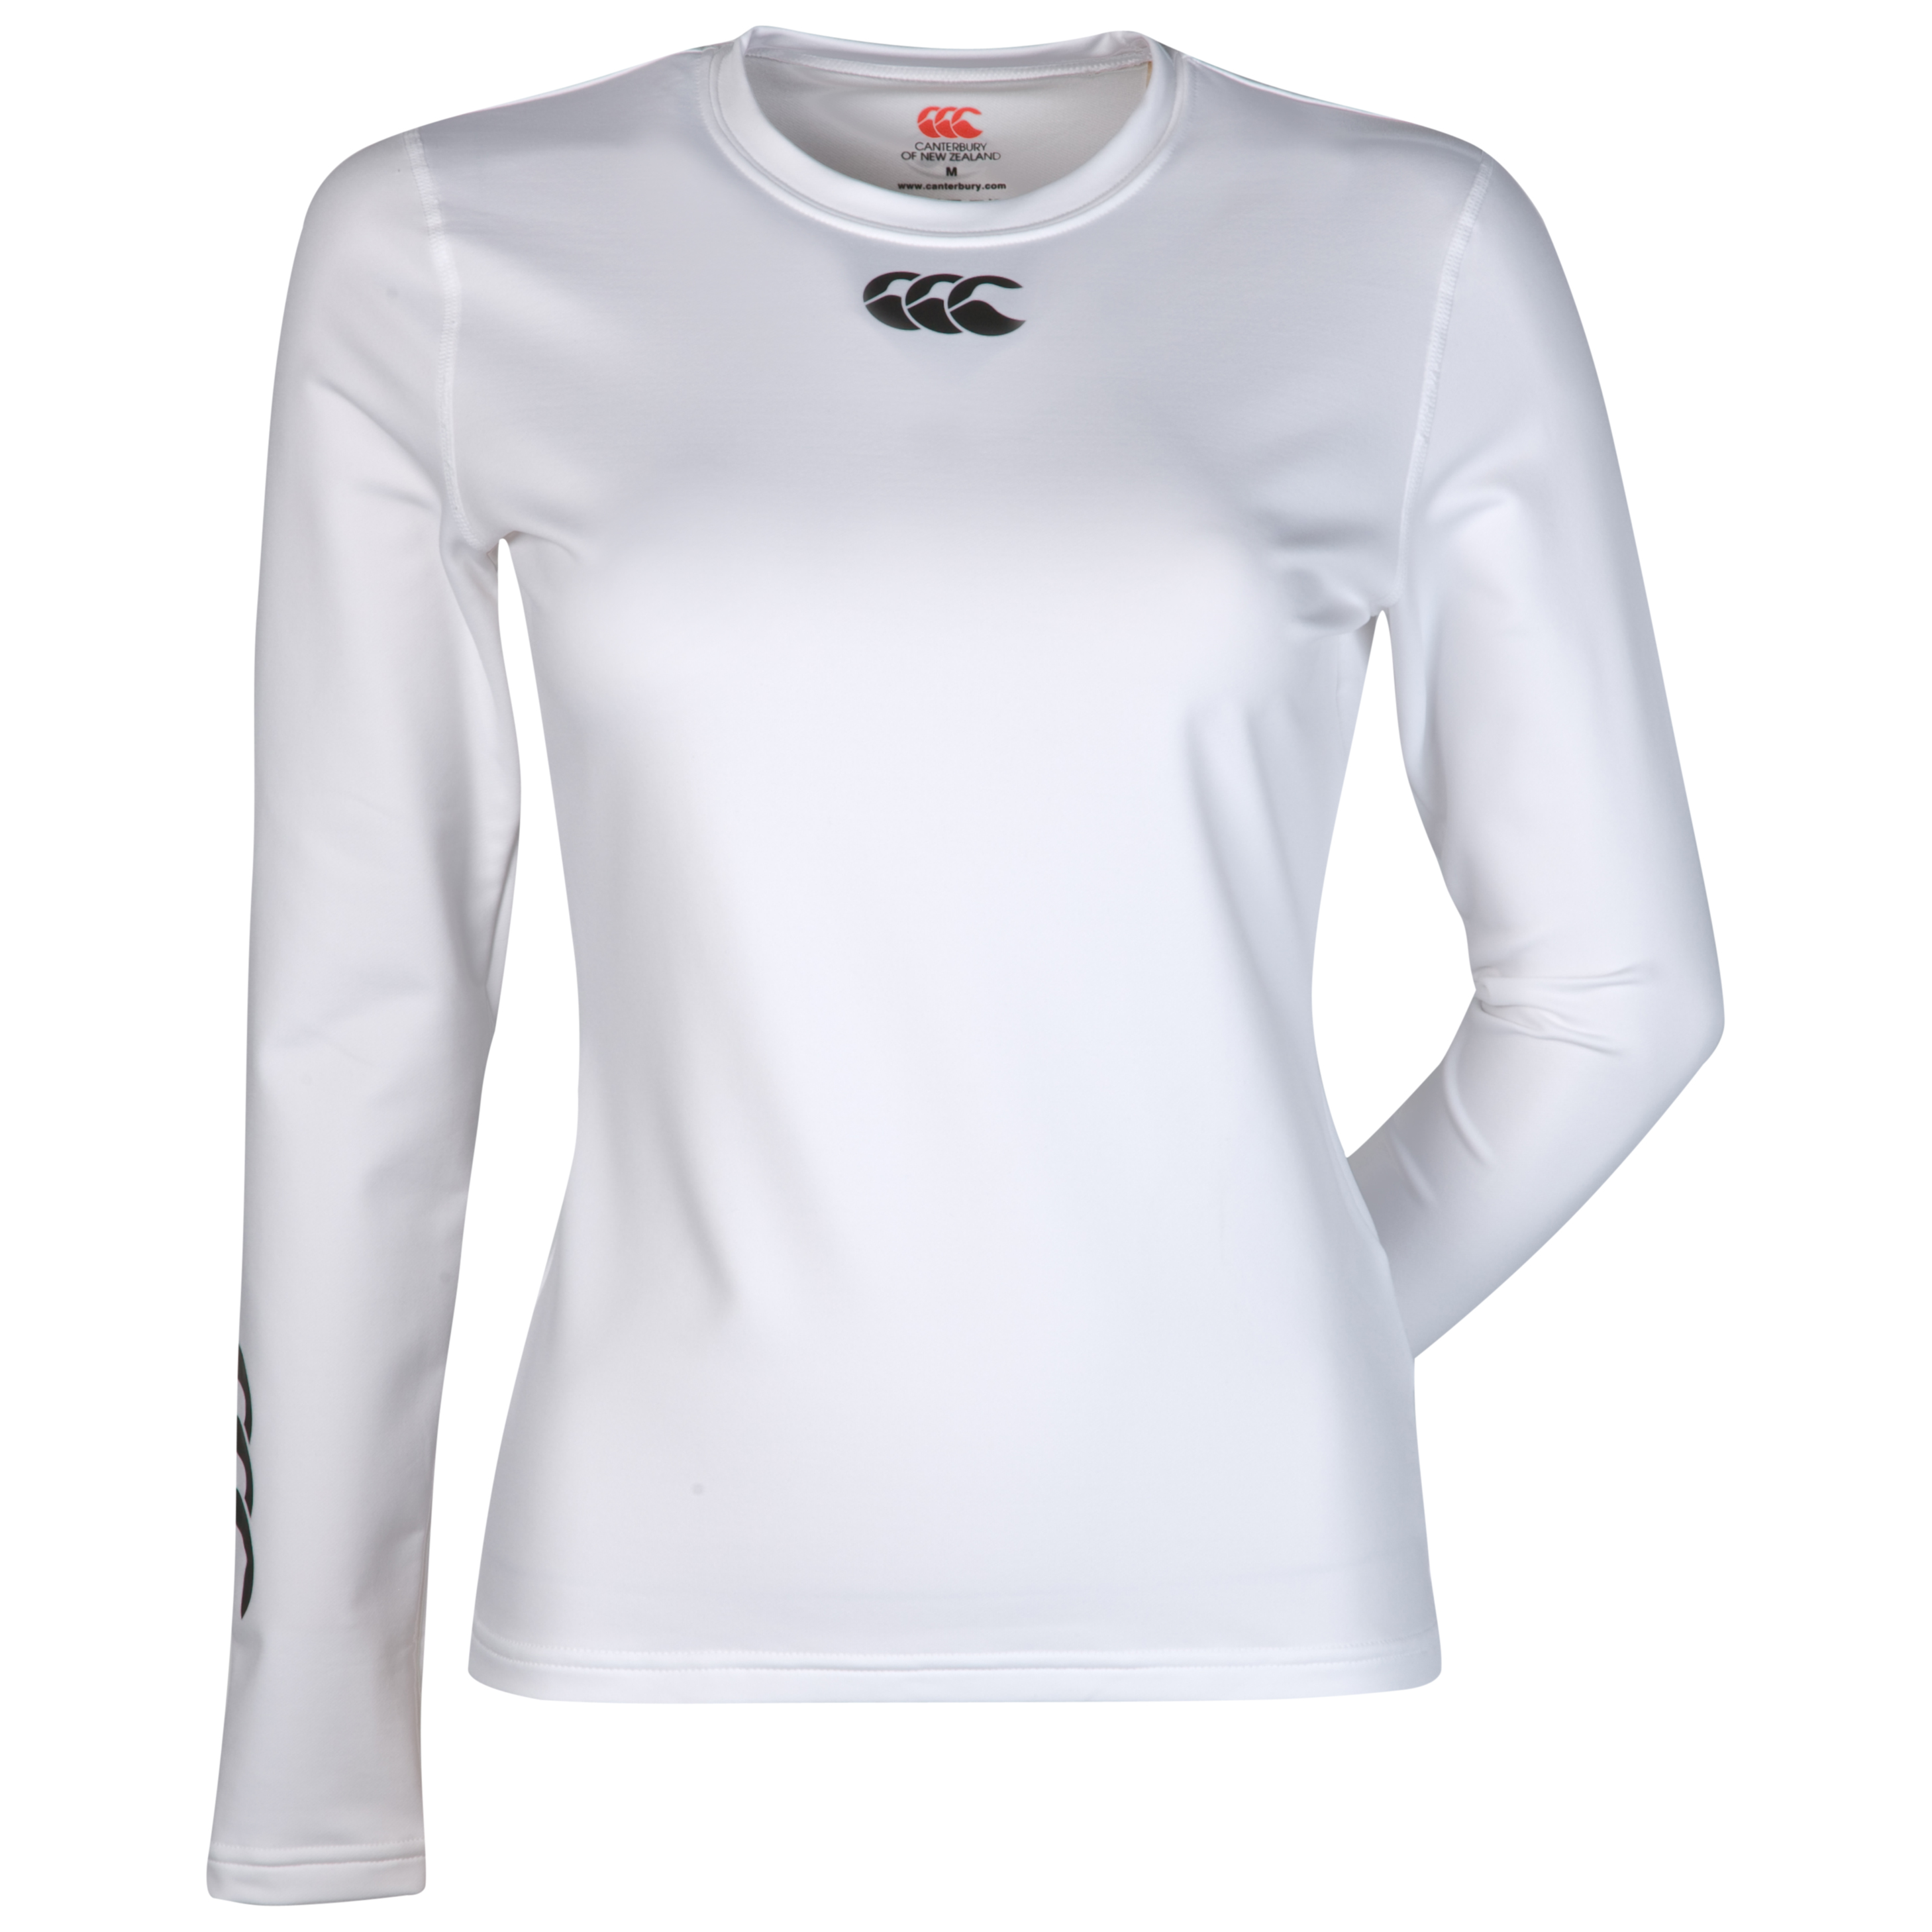 Canterbury Cold Long Sleeve Baselayer Top - Womens - White